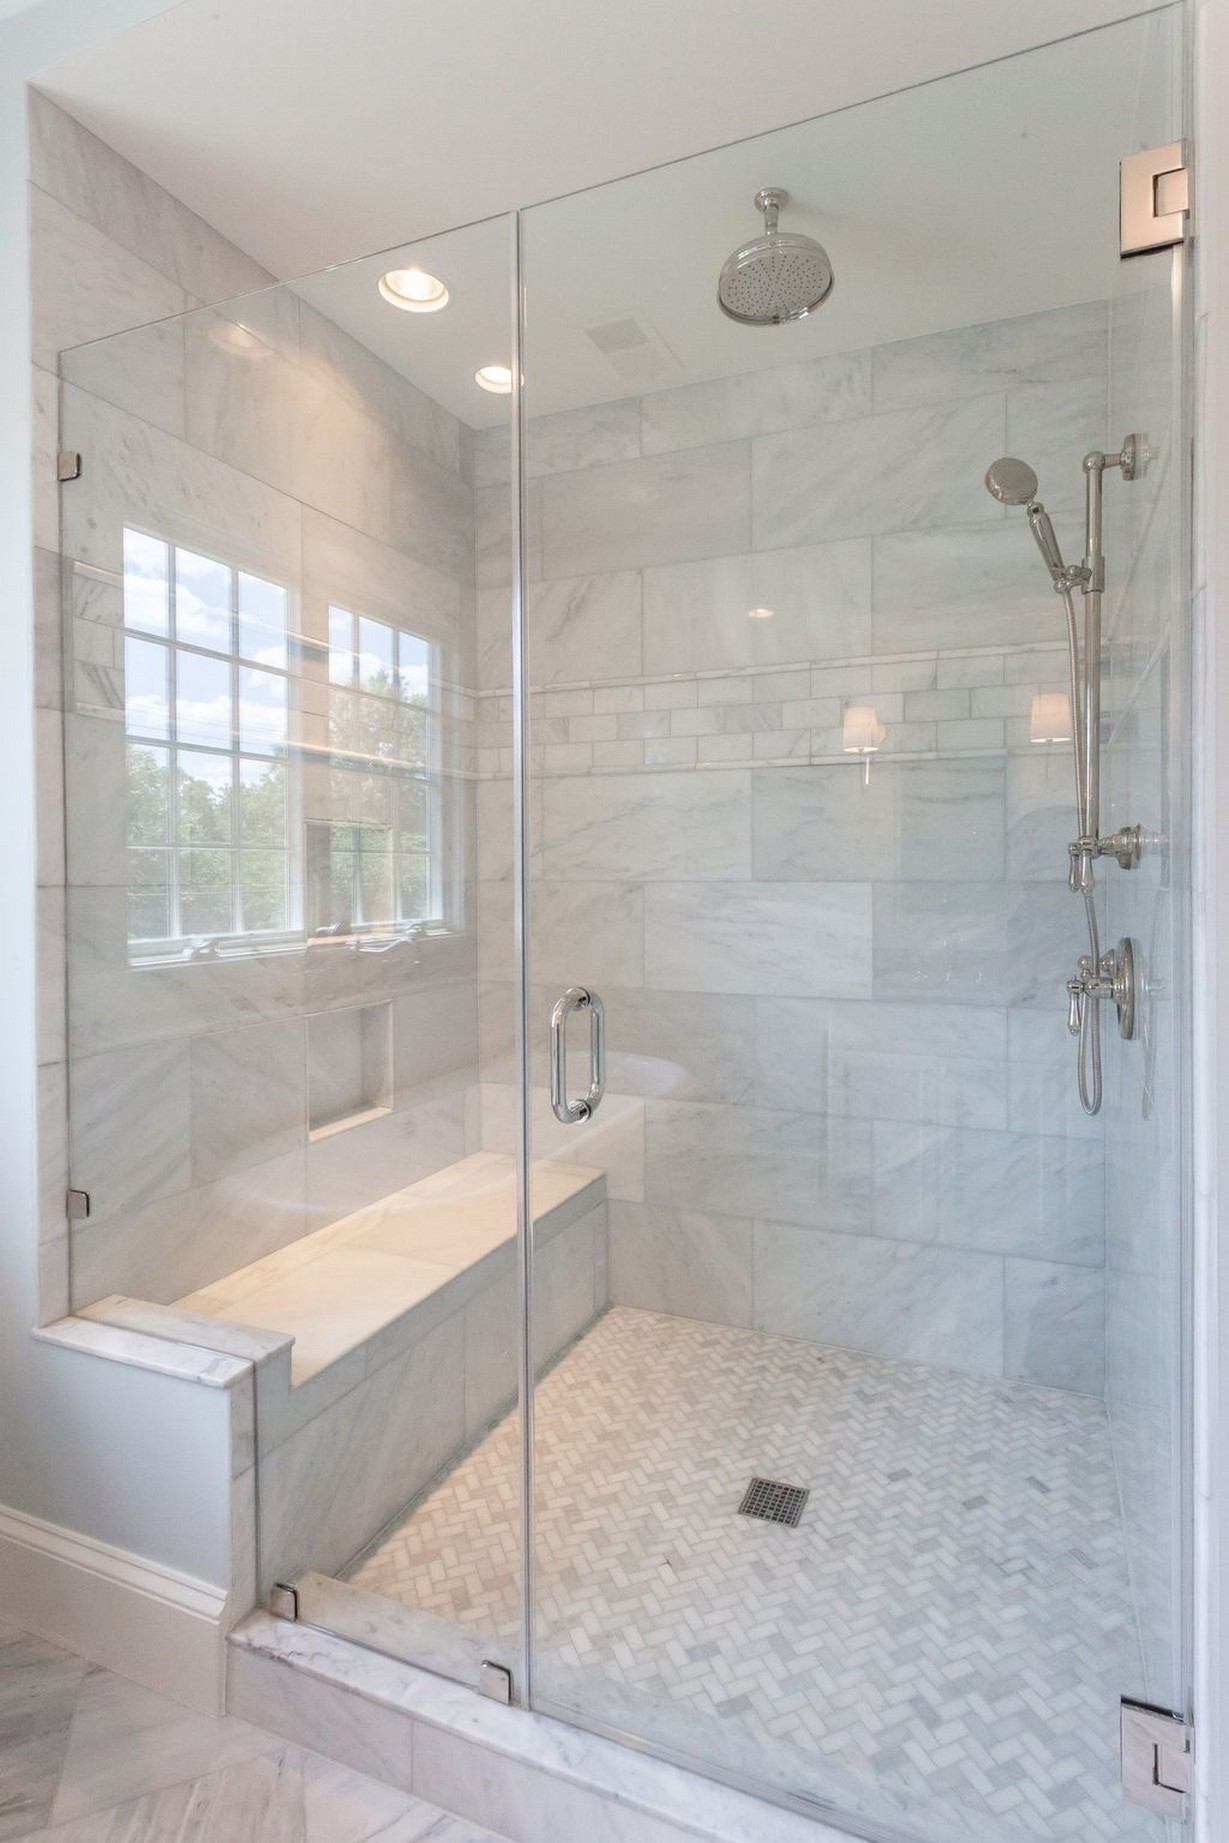 70 Master Bathroom Remodeling For Man and Woman Home Decor 1